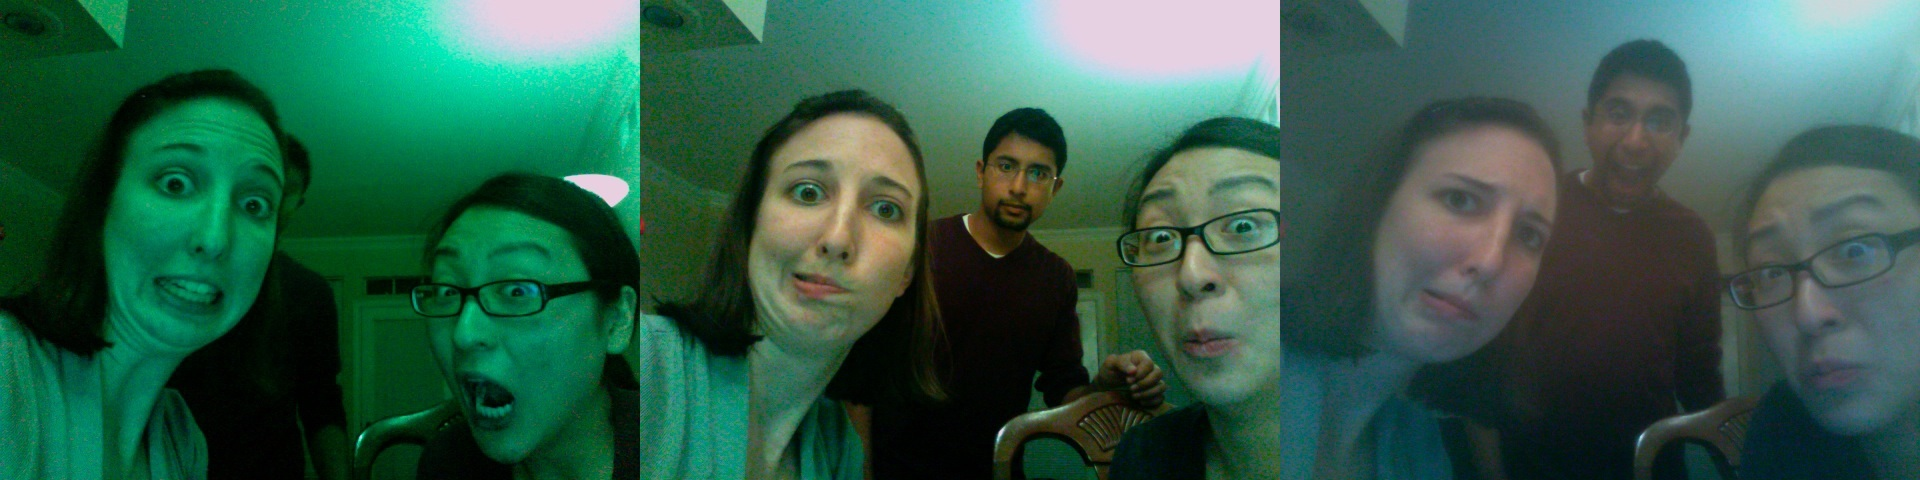 Krishna, Lindsey, and I goofing off using Photo Booth, 2009